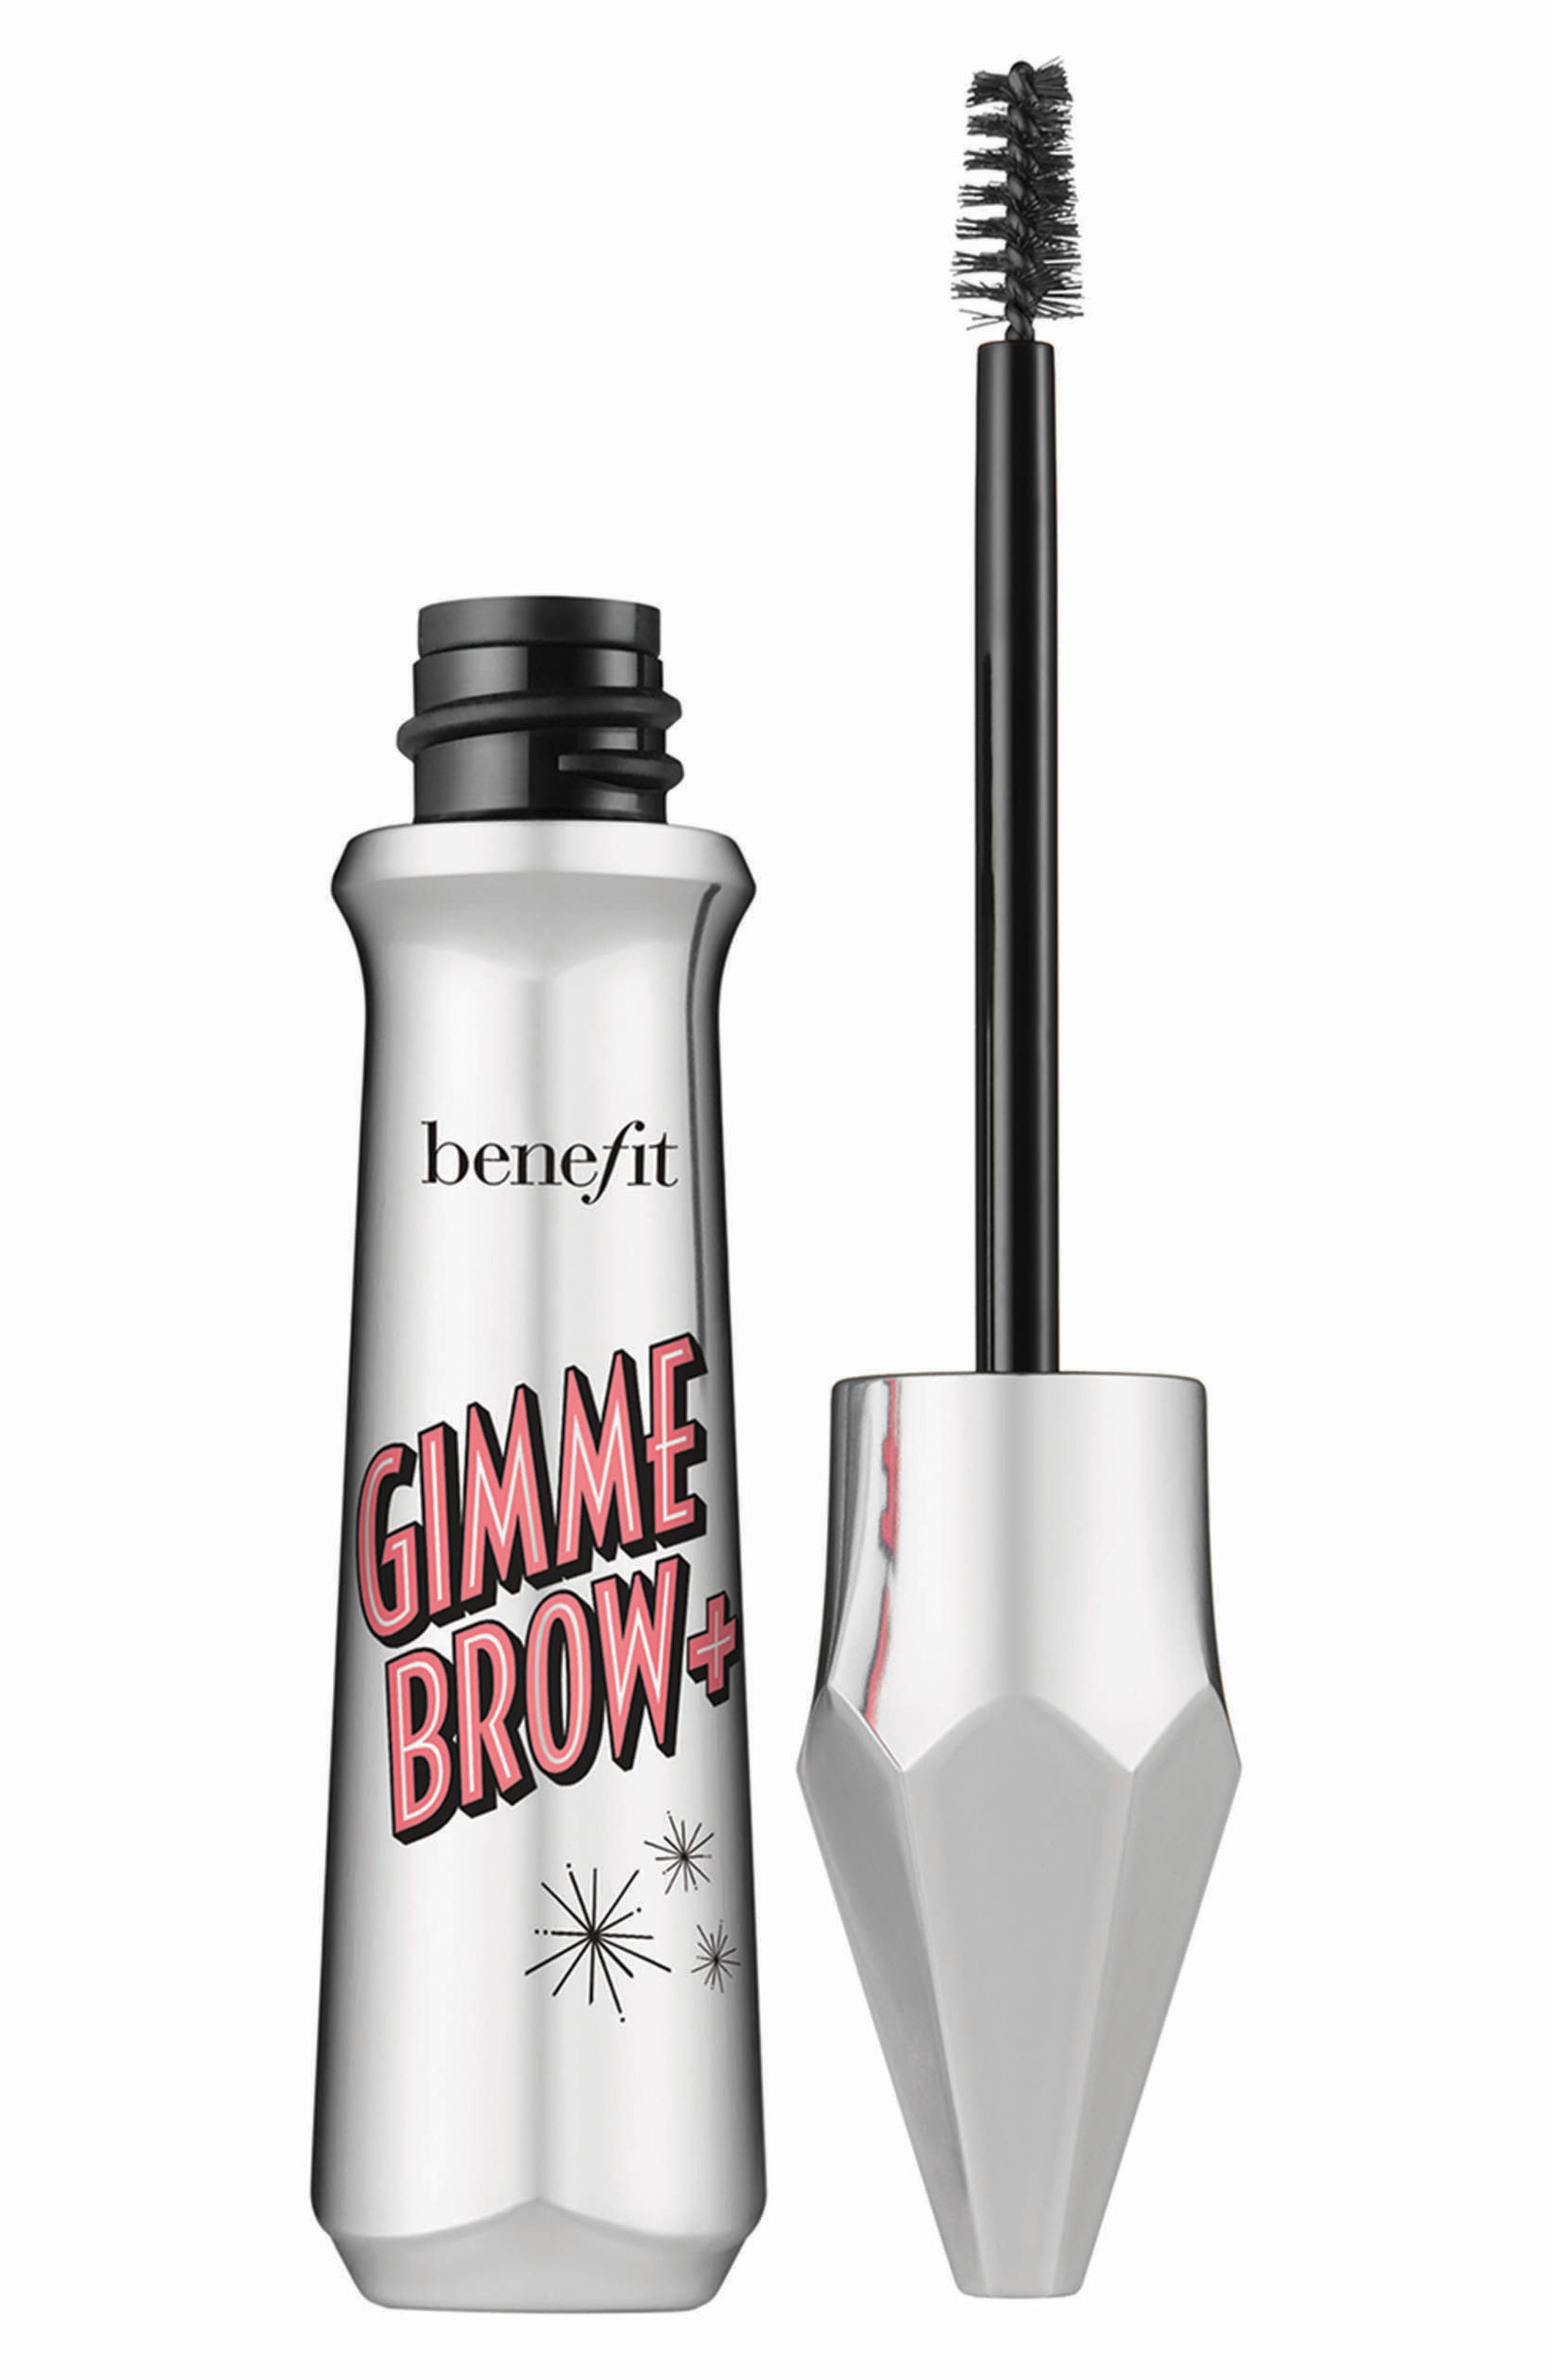 BENEFIT COSMETICS, Benefit Gimme Brow+ Volumizing Eyebrow Gel, Main thumbnail 1, color, 01 LIGHT/COOL LIGHT BLONDE